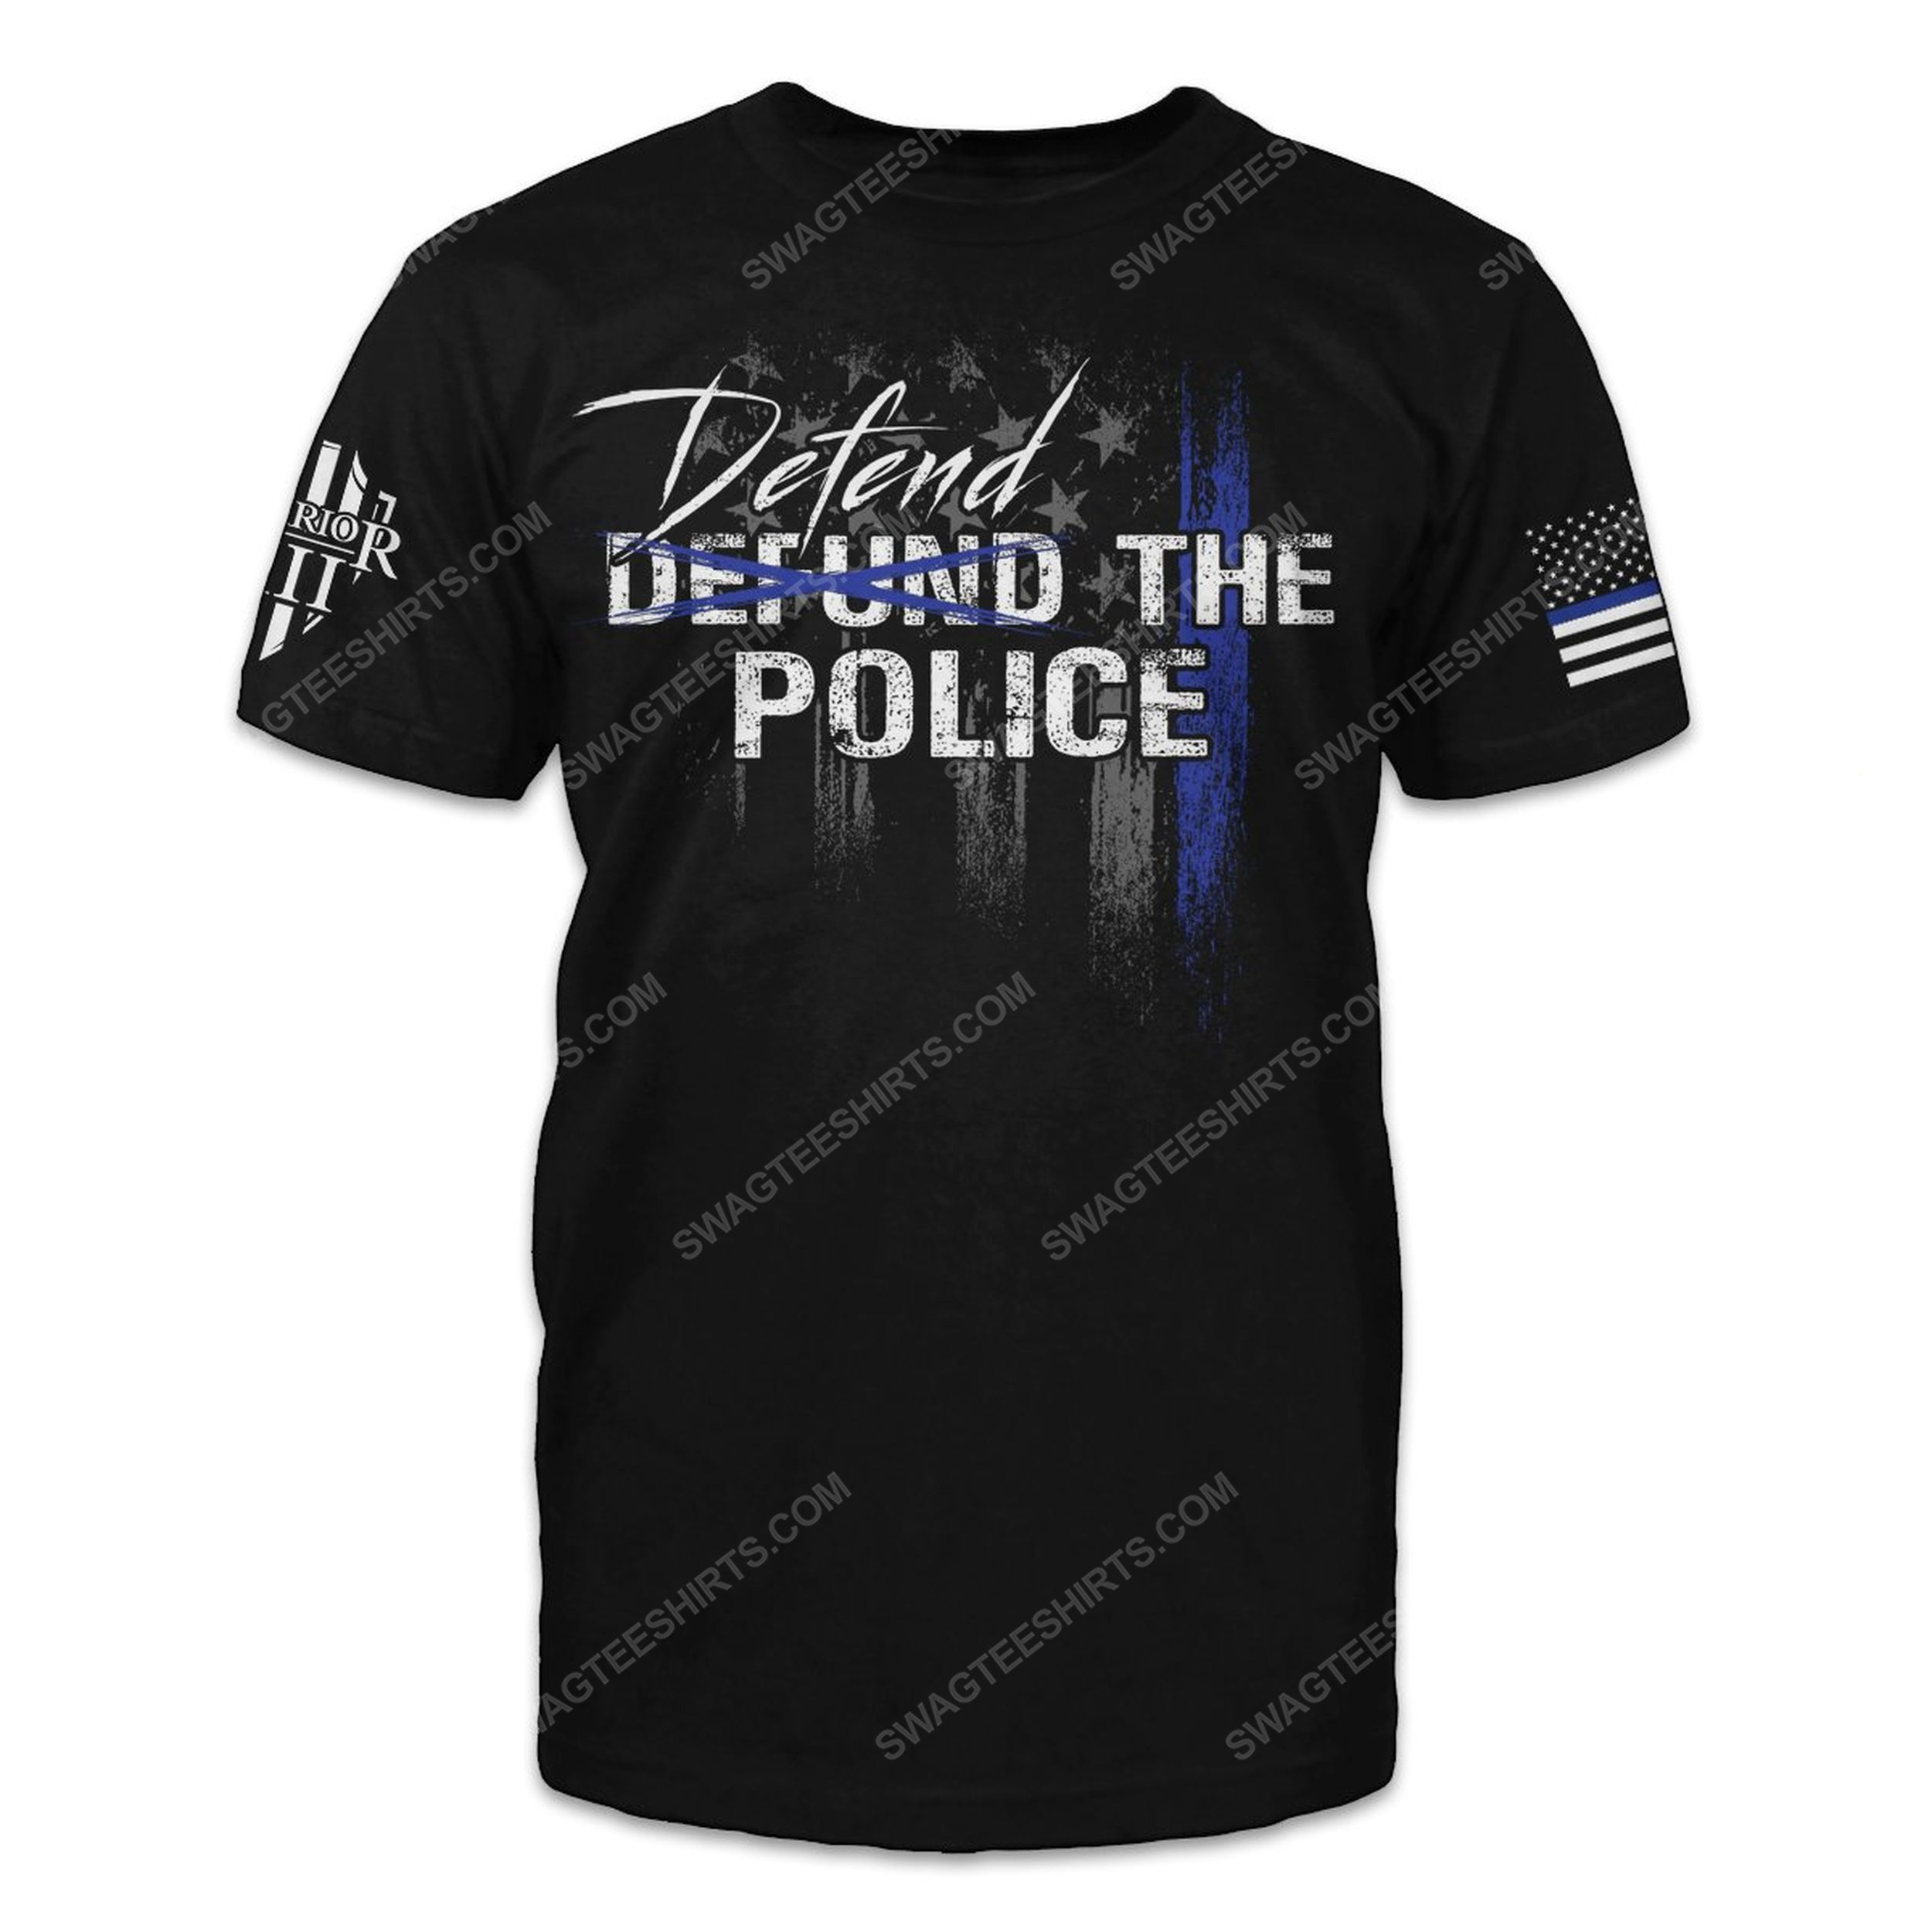 American law enforcement defend the police shirt